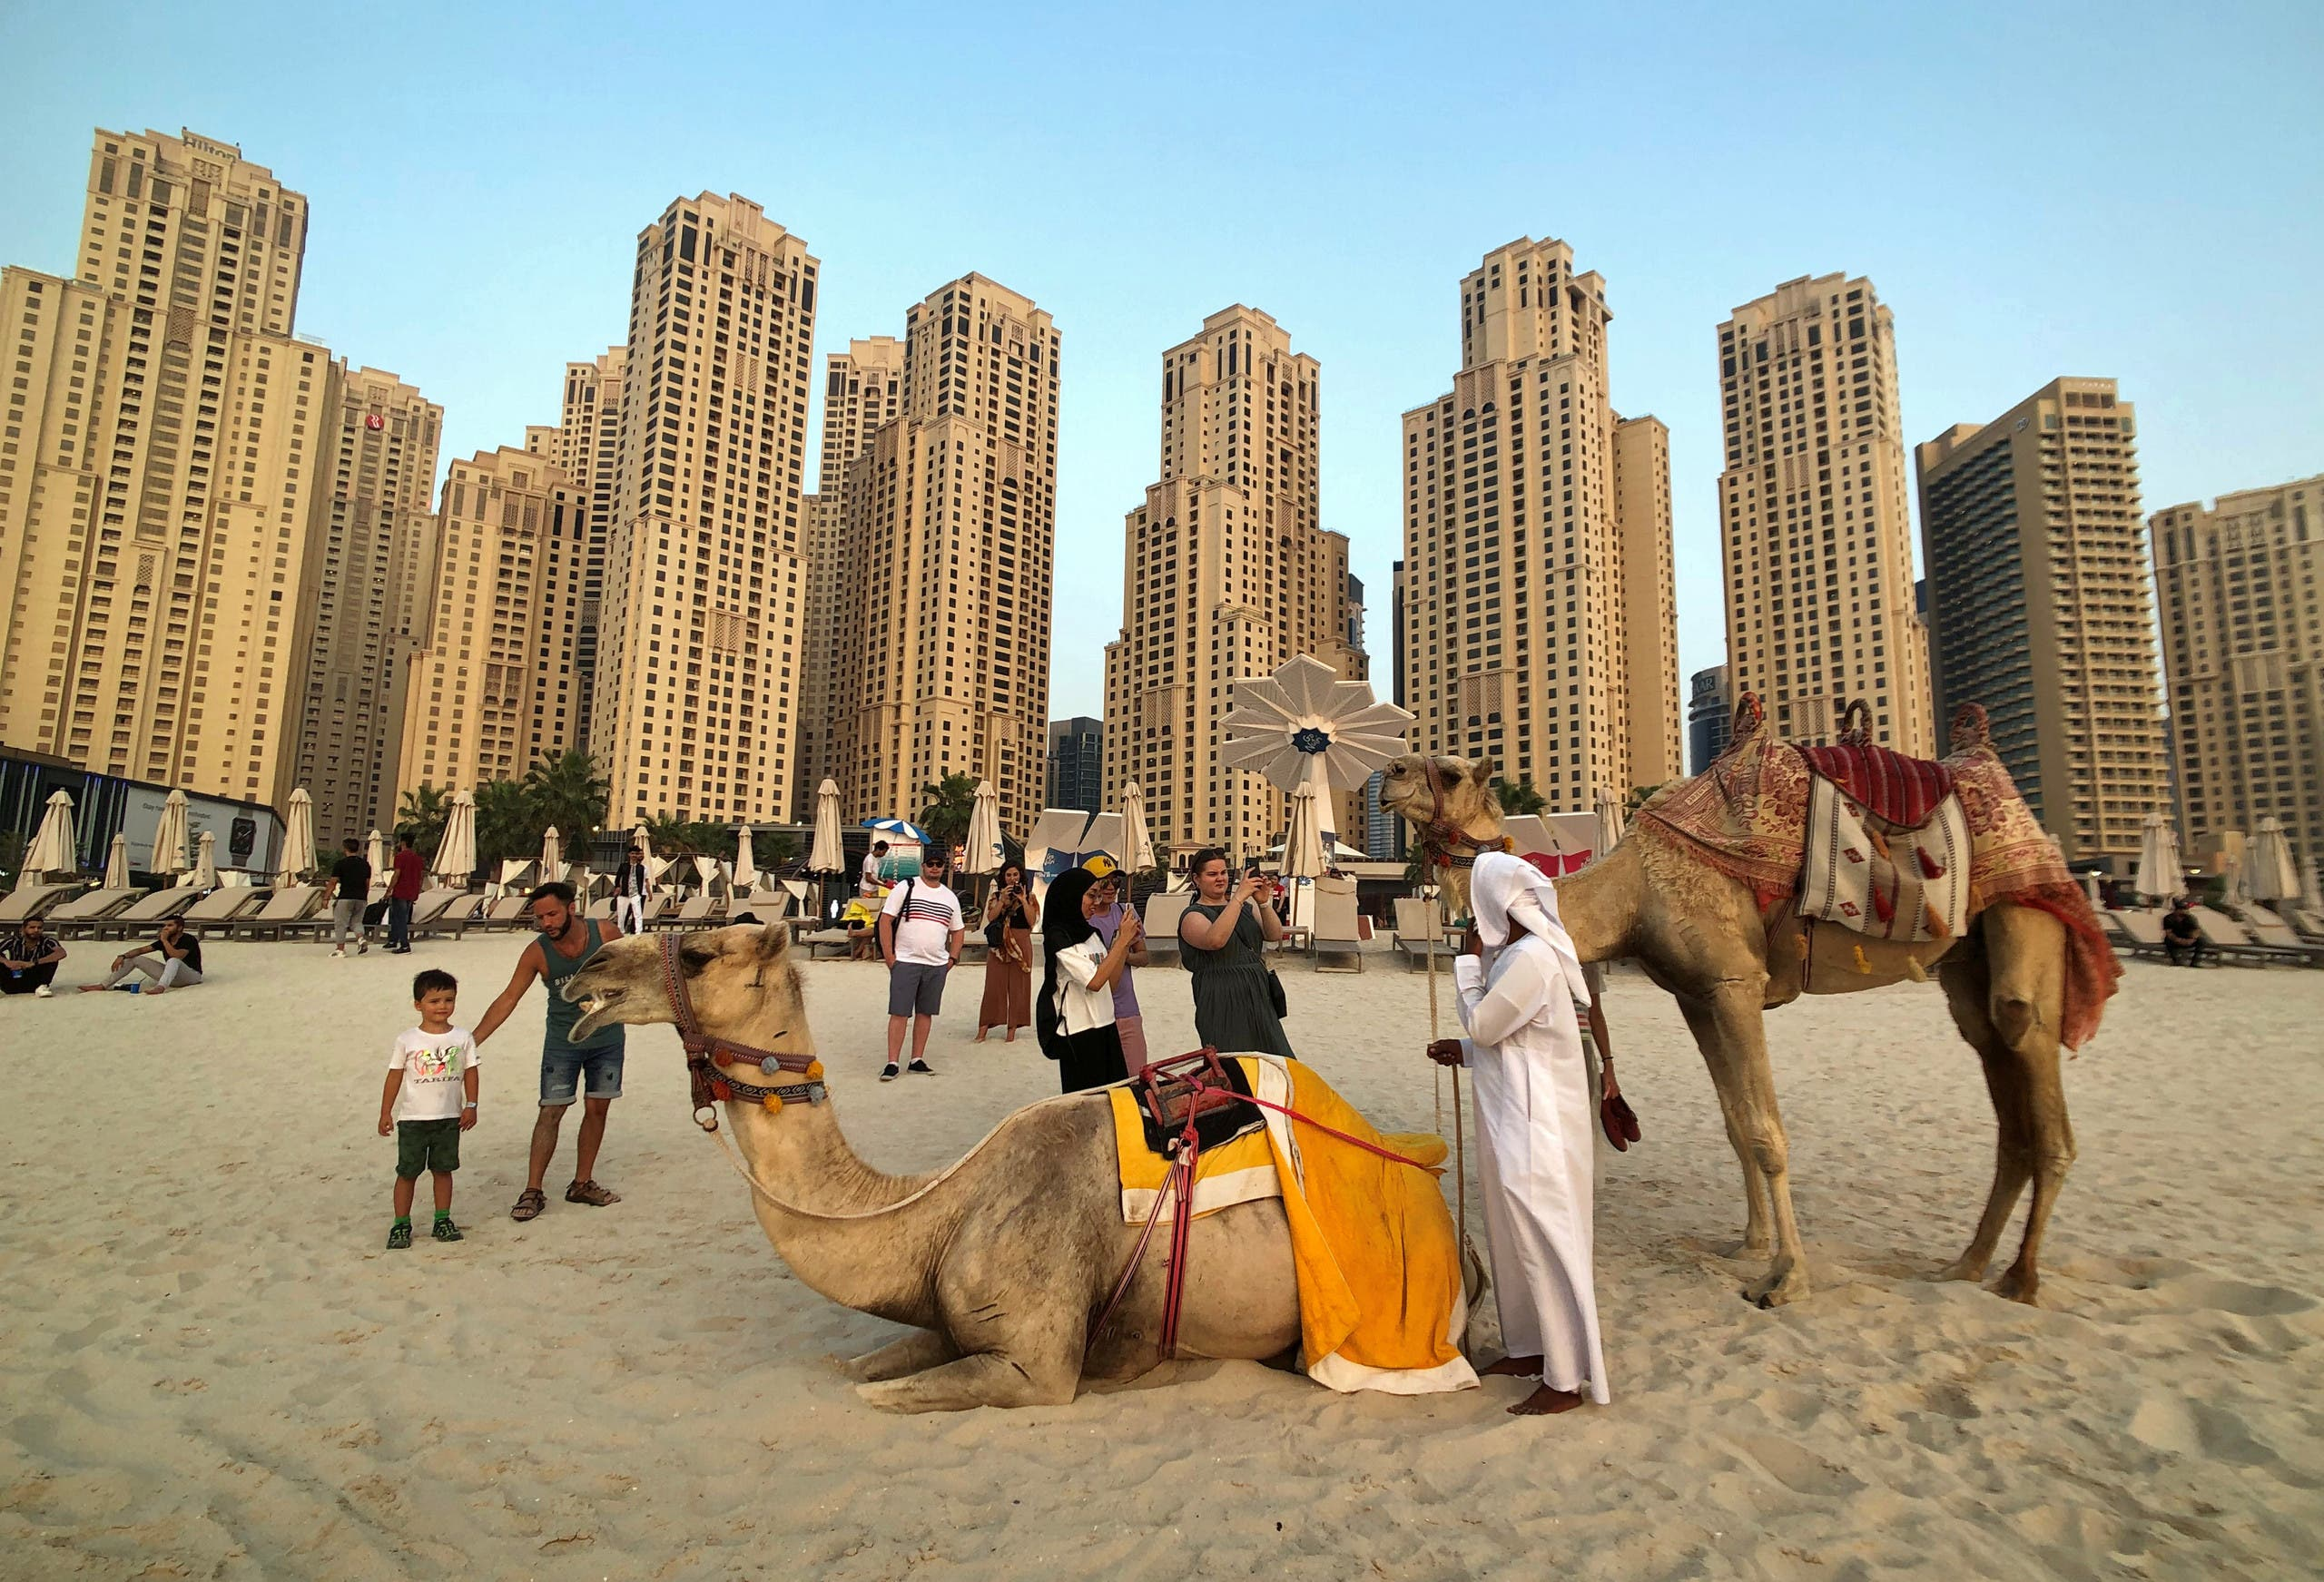 Tourists take photos with camels on the beach at Jumeirah Beach Residence in Dubai, United Arab Emirates, July 17, 2019. (AP)